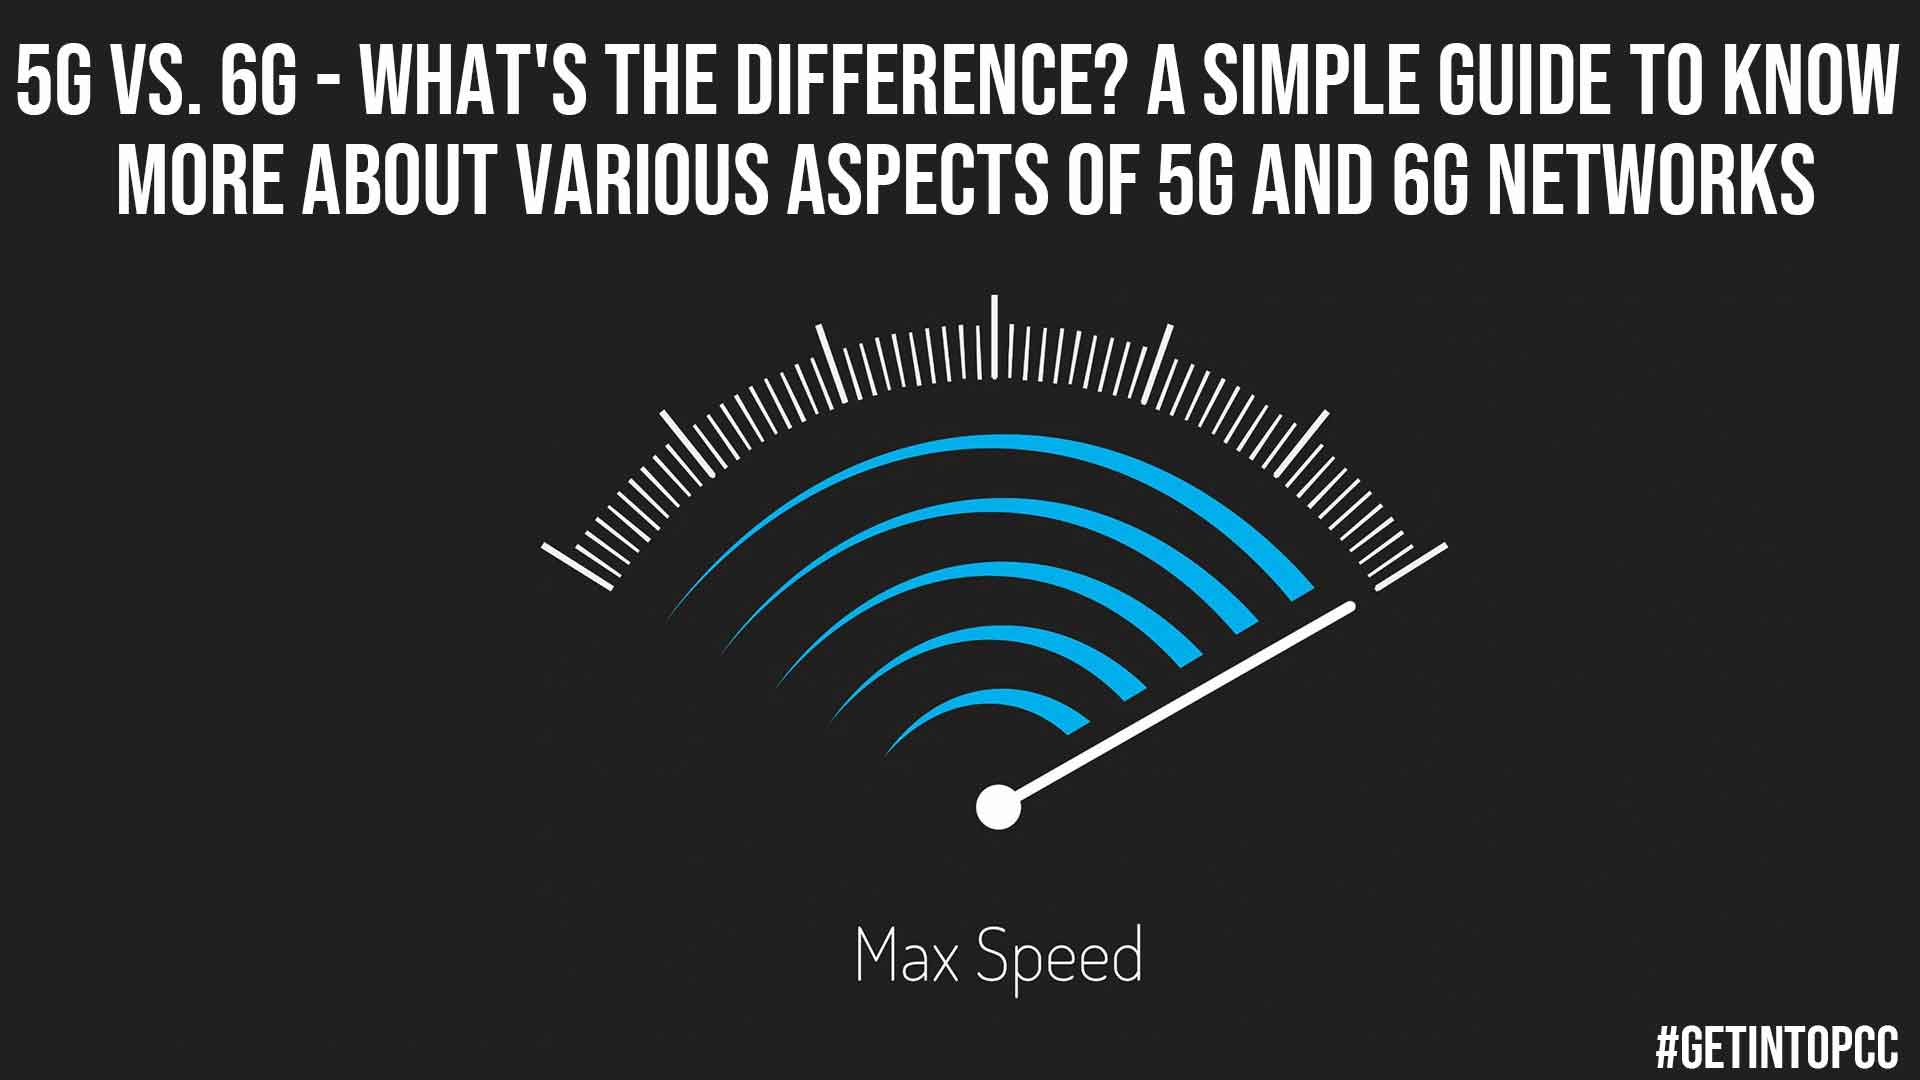 5G vs 6G Whats the Difference A Simple Guide to Know More about Various Aspects of 5G and 6G Networks